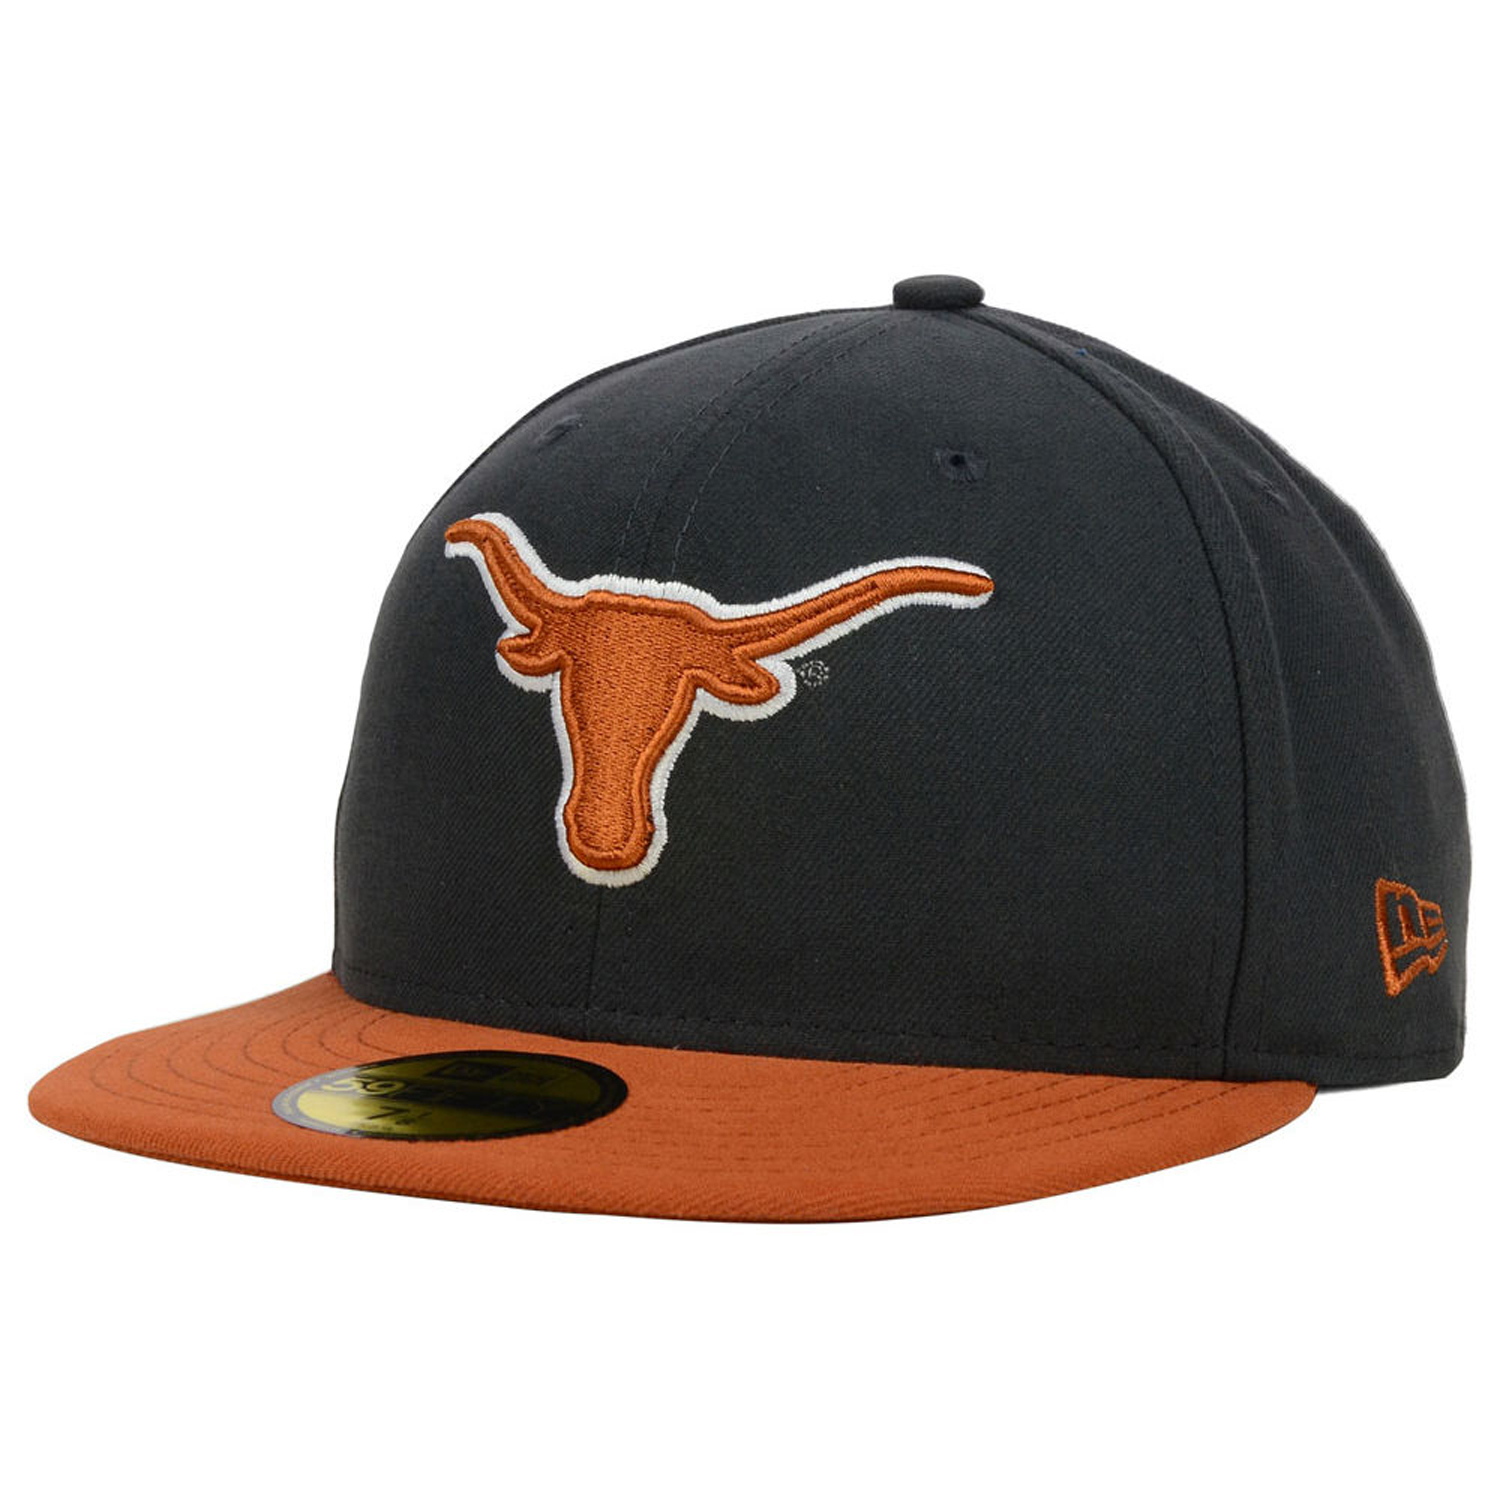 26e340aaabc8b Details about New Era Texas Longhorns 2-Tone Graphite 59Fifty Fitted Cap Hat